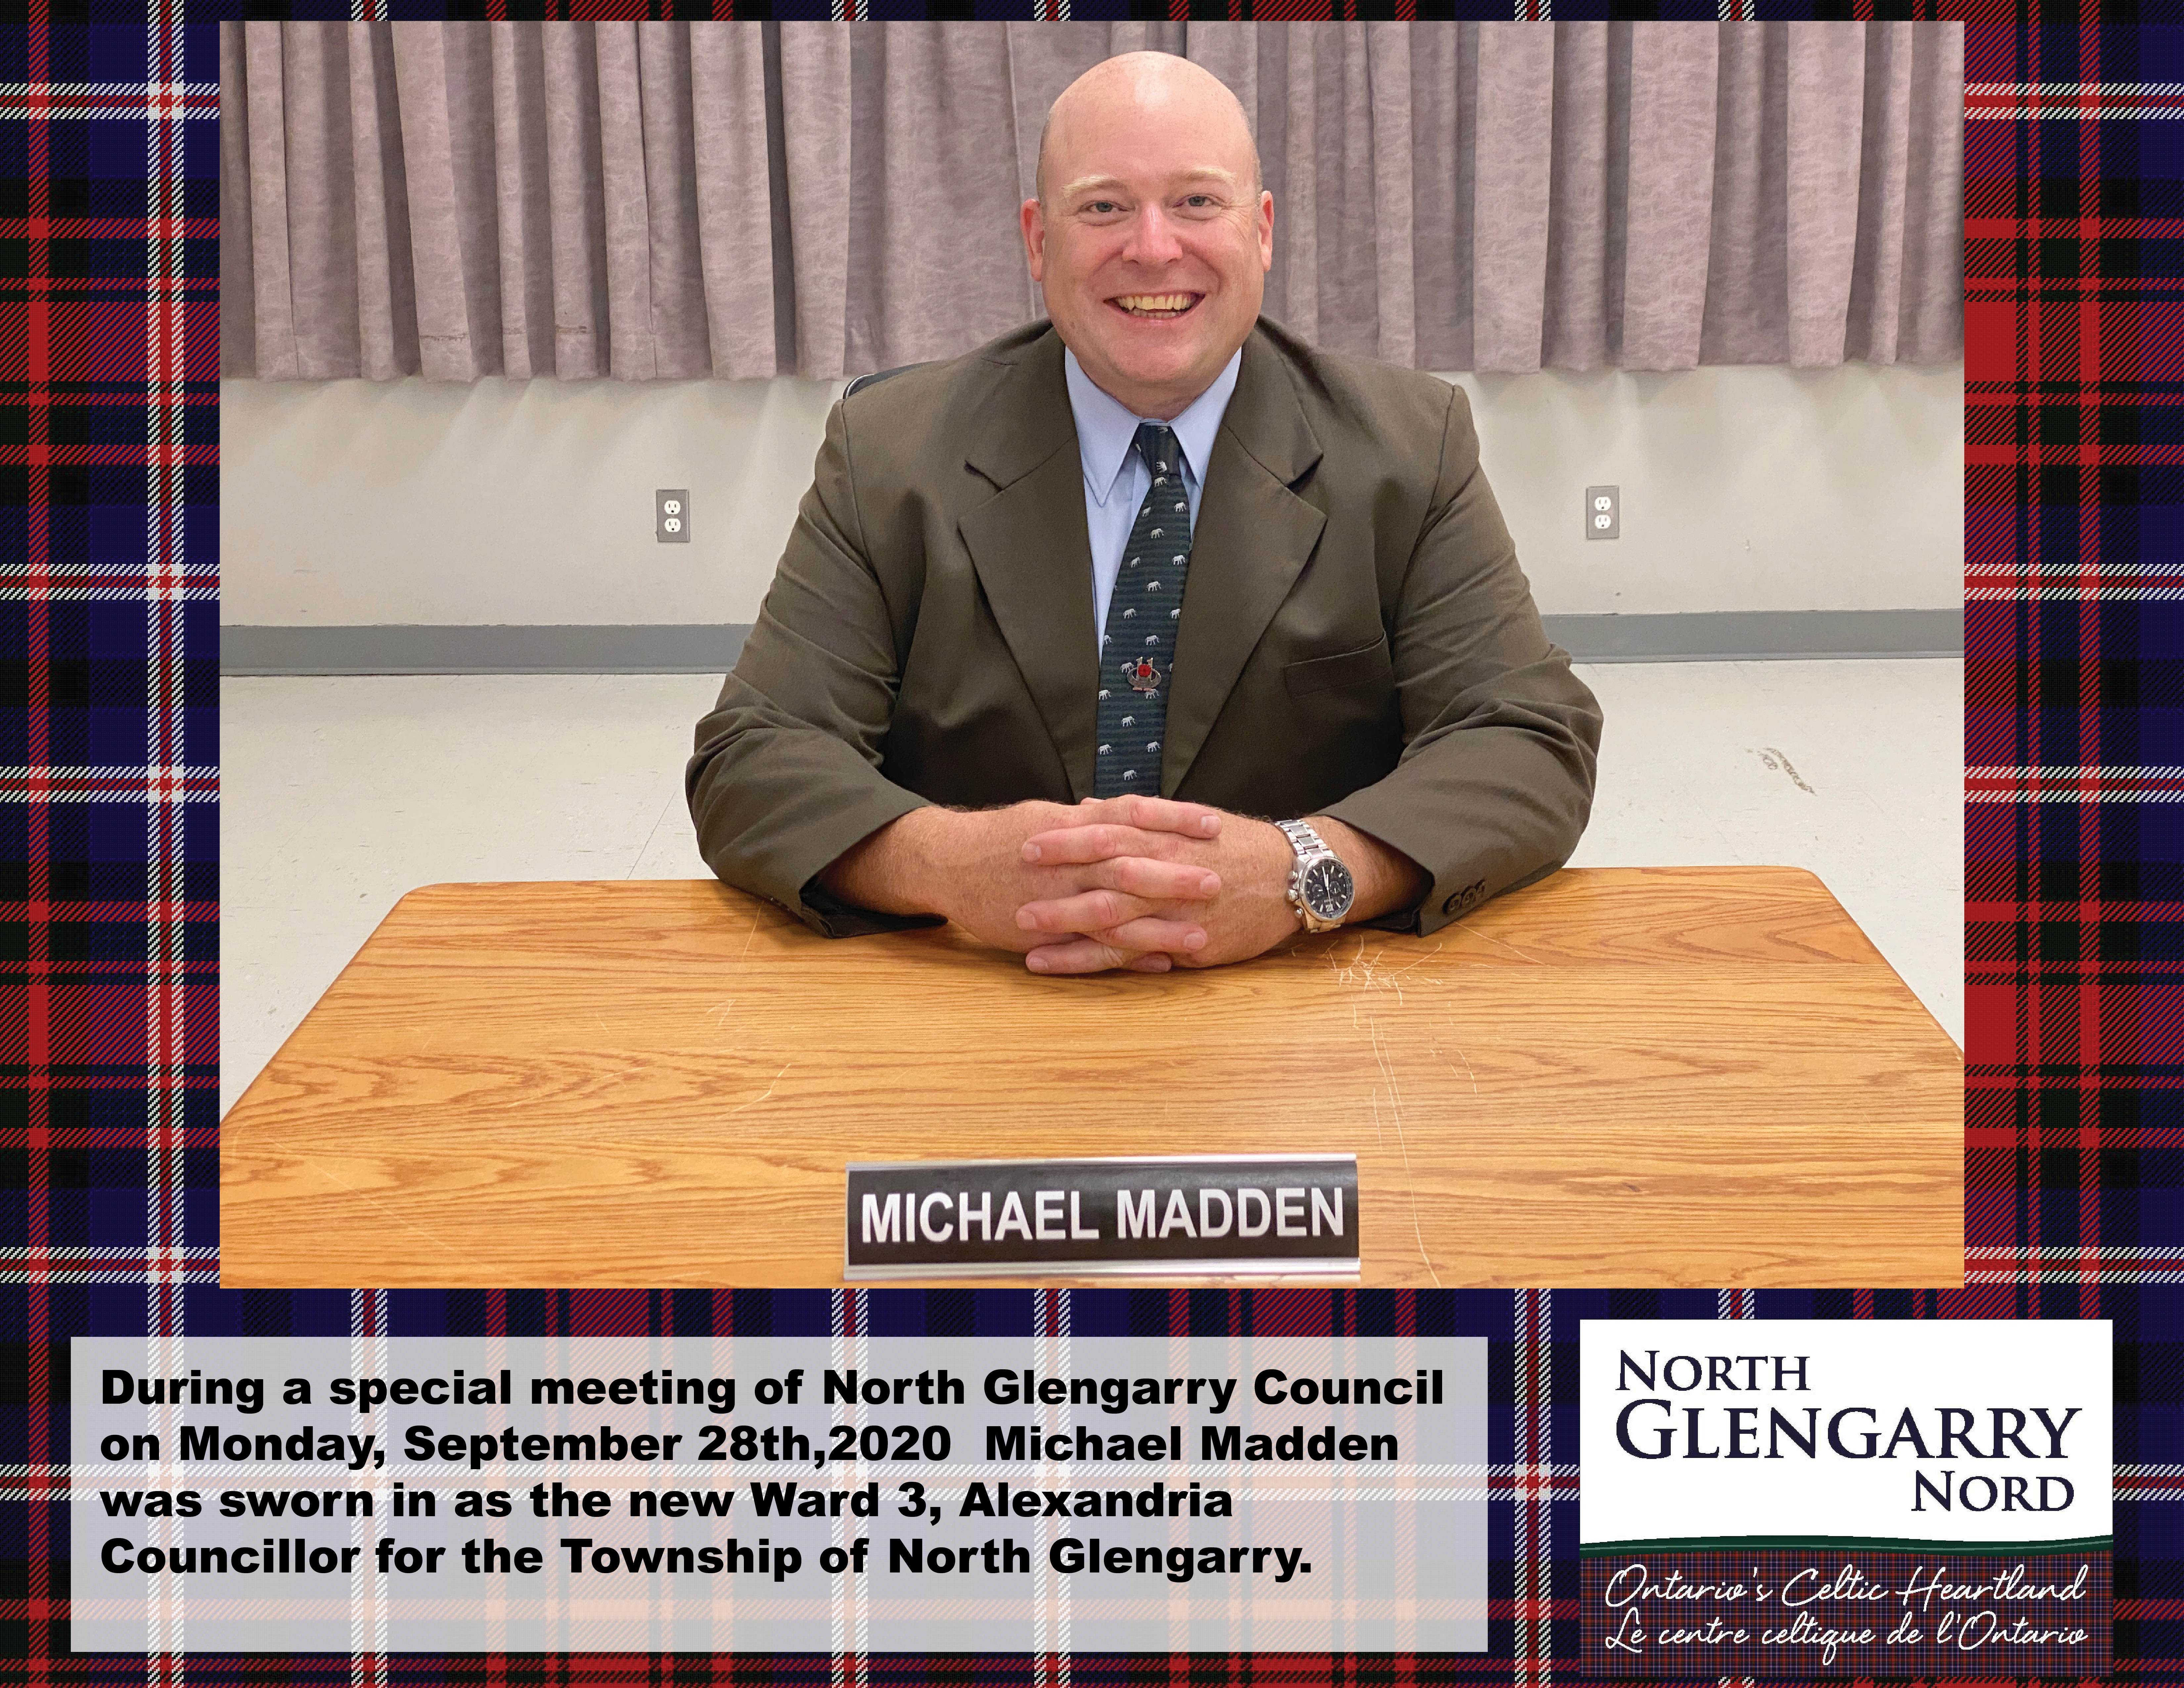 Michael Madden sworn in as Ward 3 Councillor for the Township of North Glengarry